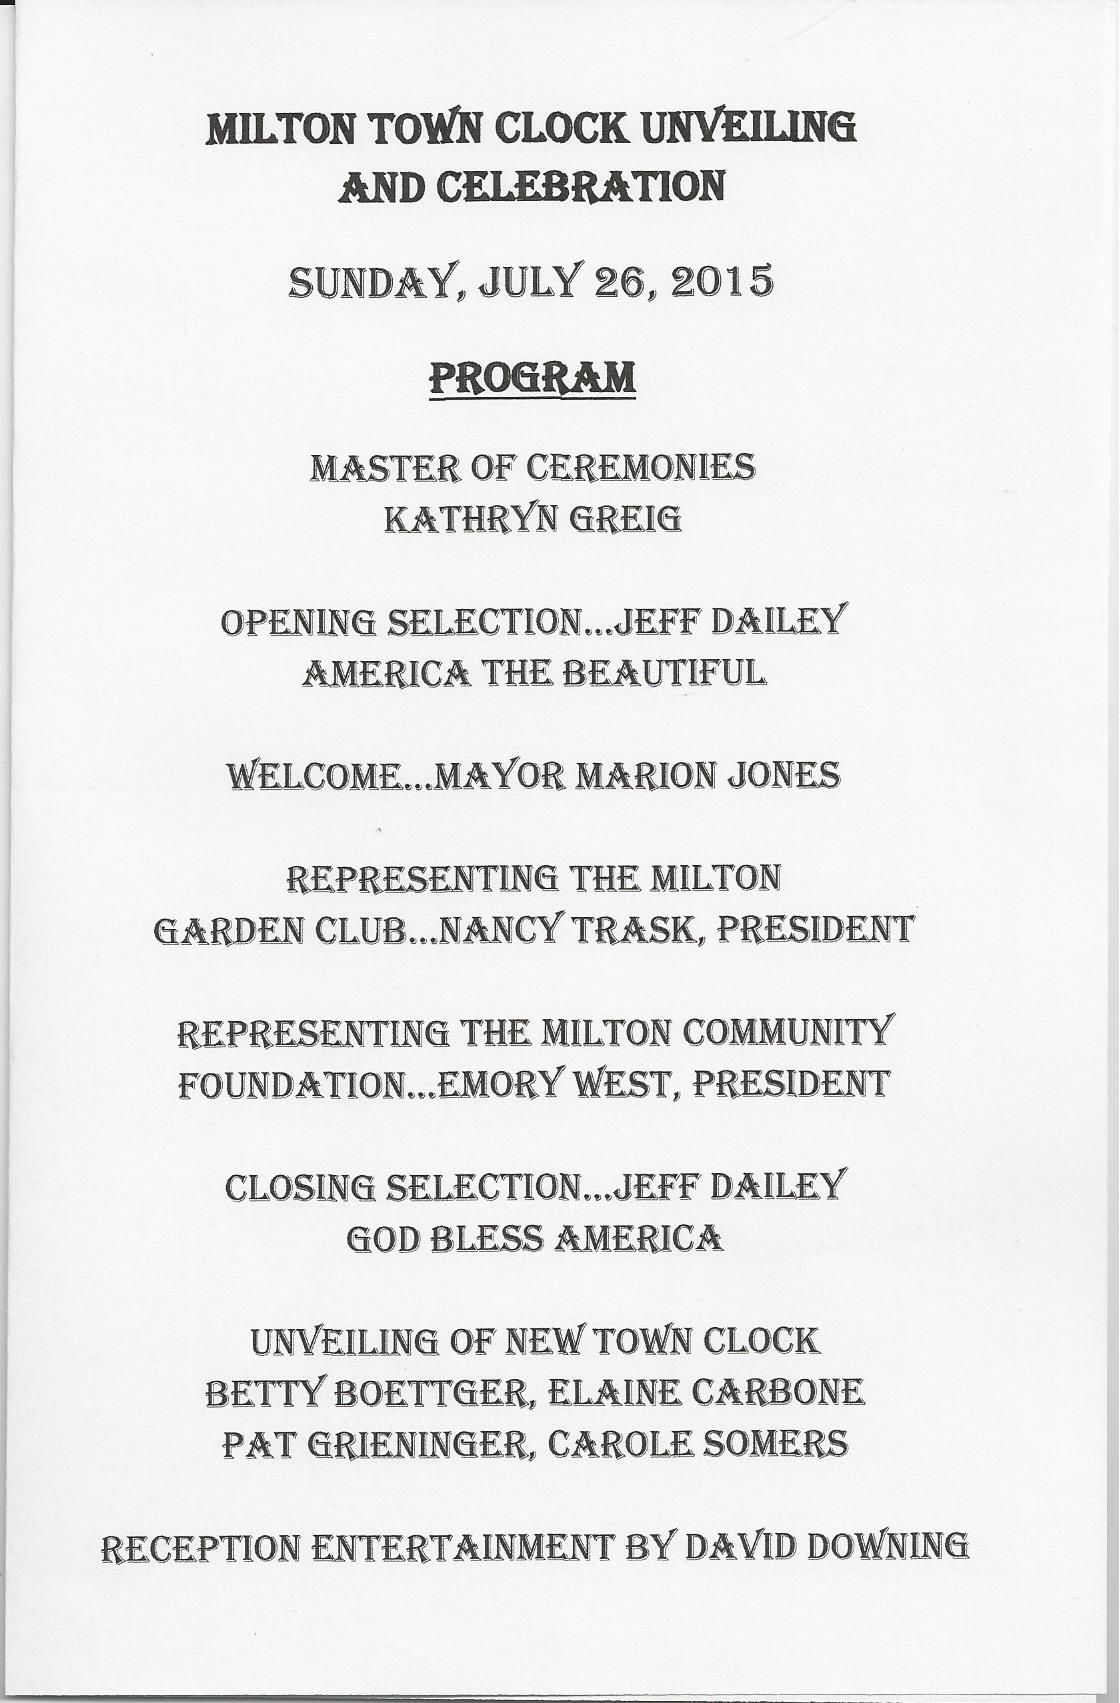 Milton Clock Unveiling Program 7.26.15